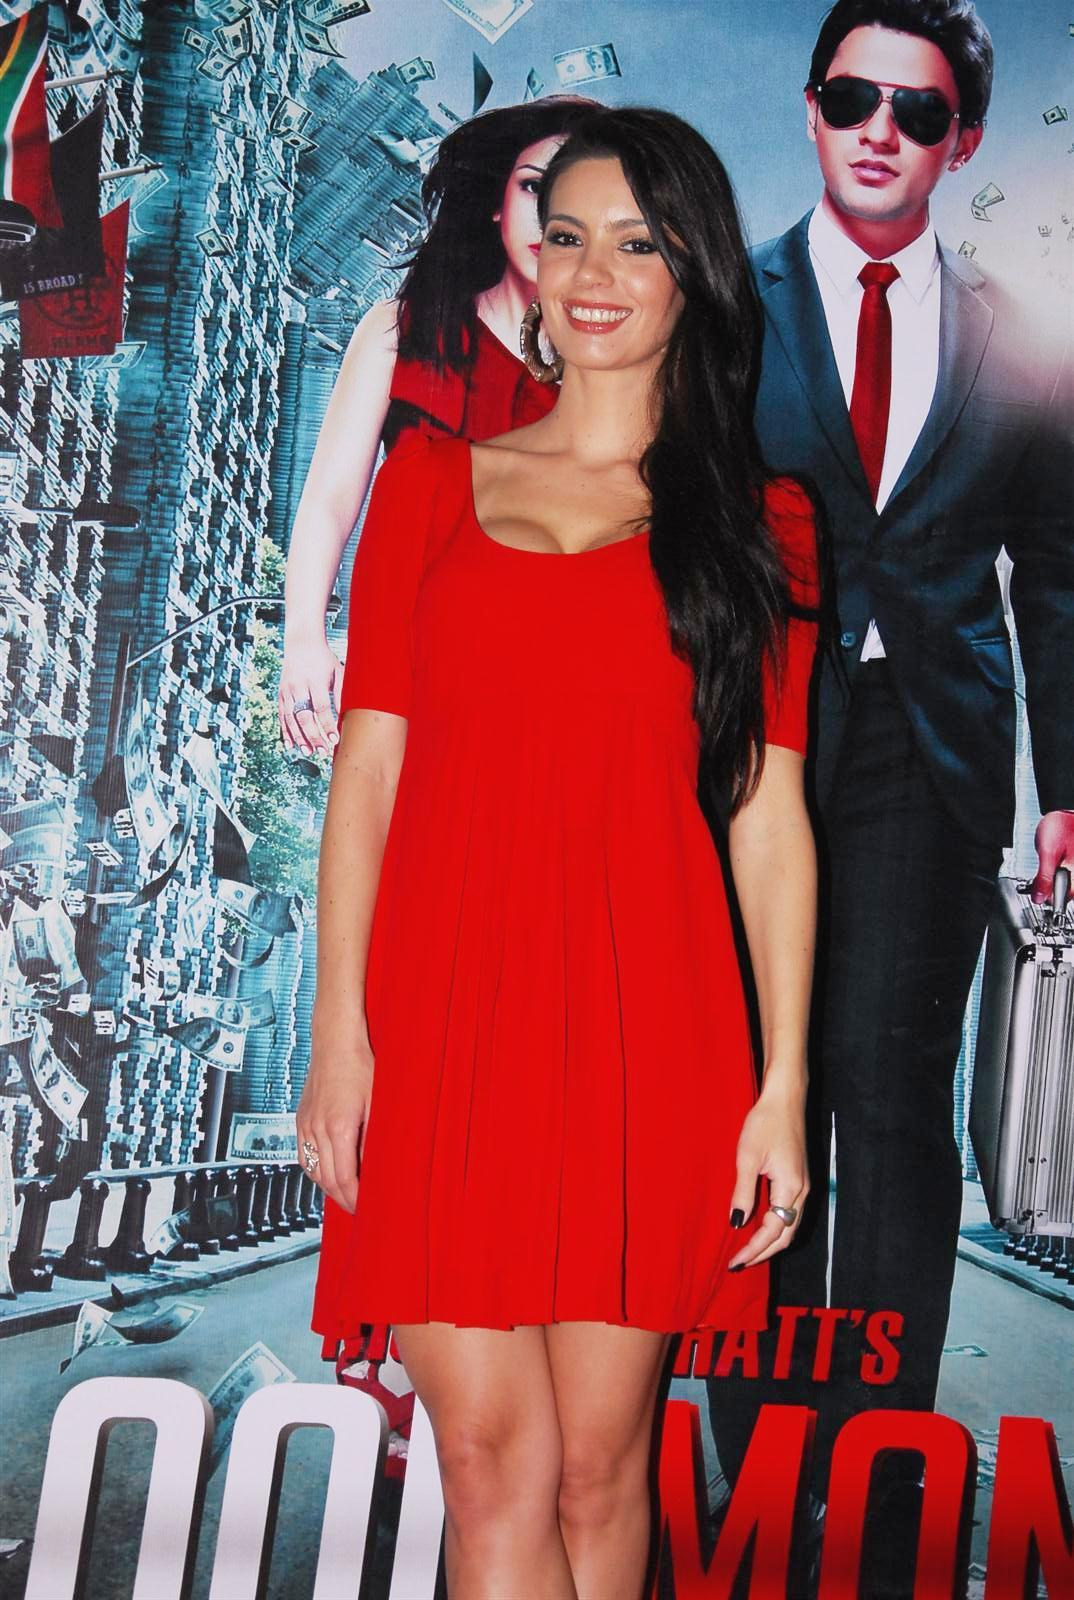 Discussion on this topic: Ariel Winter, mia-uyeda/